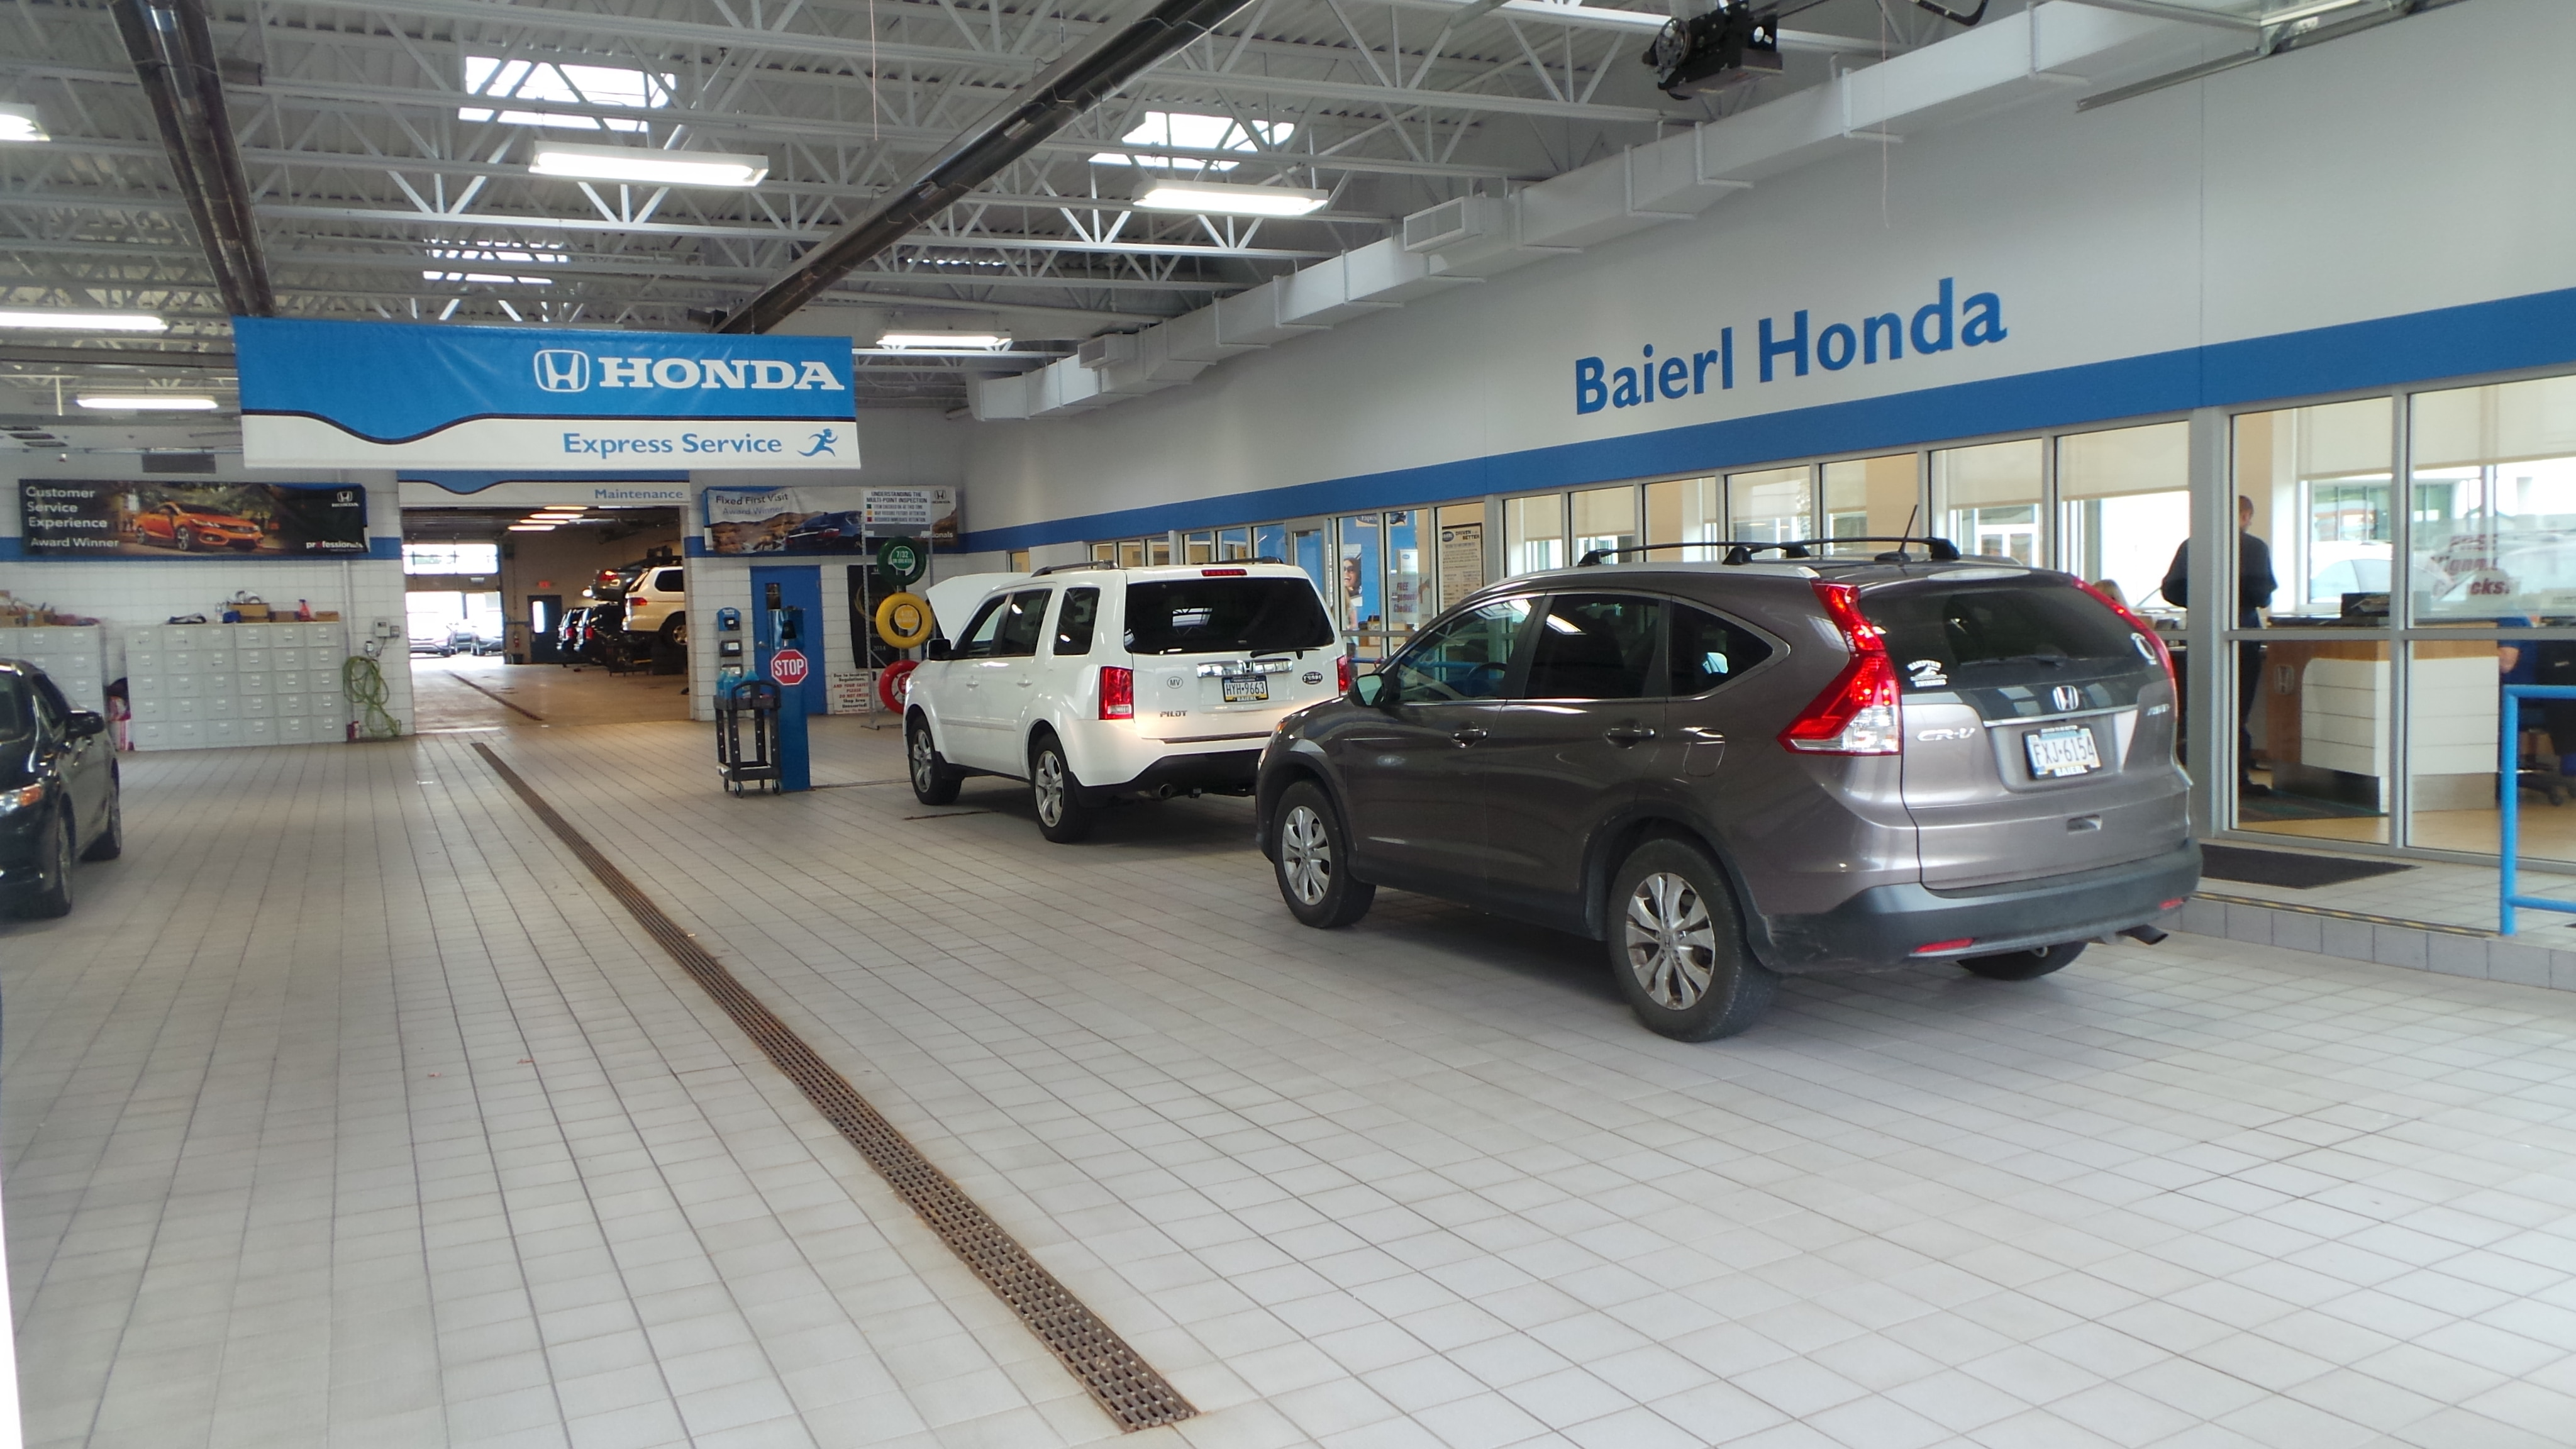 Baierl honda new honda dealership in wexford pa 15090 for Honda express service